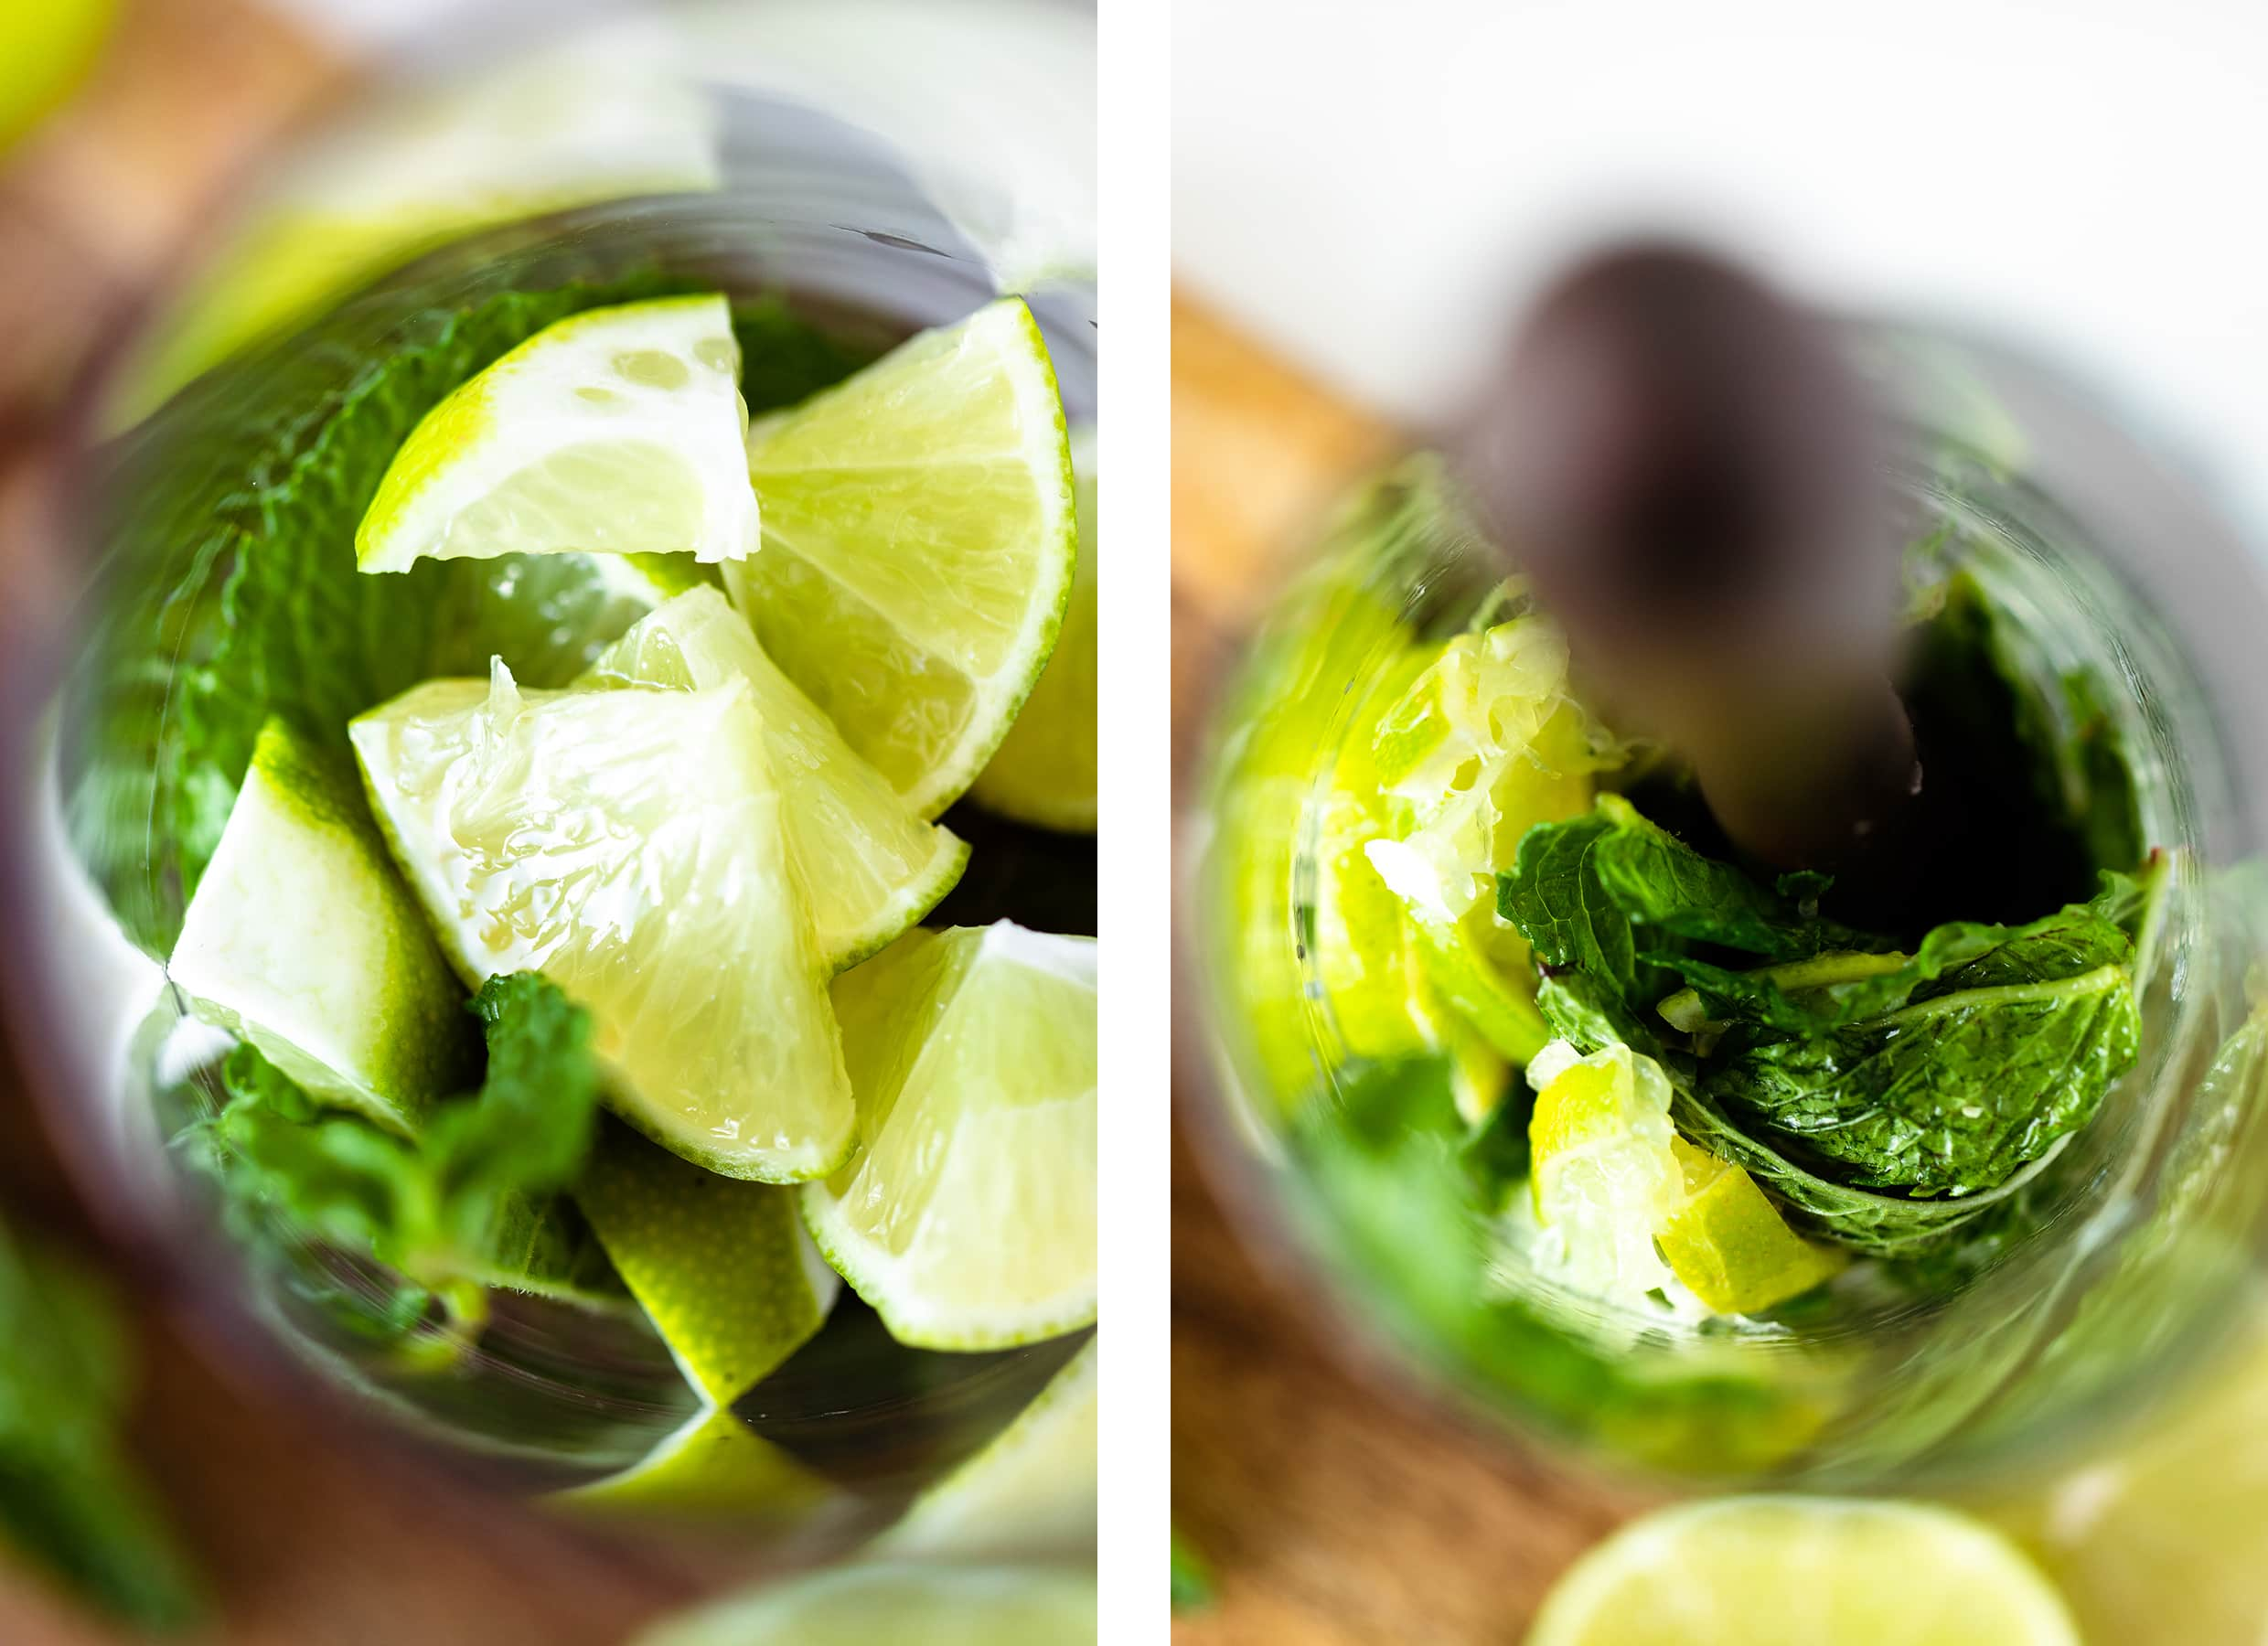 A close up image of mint leaves and cut up limes